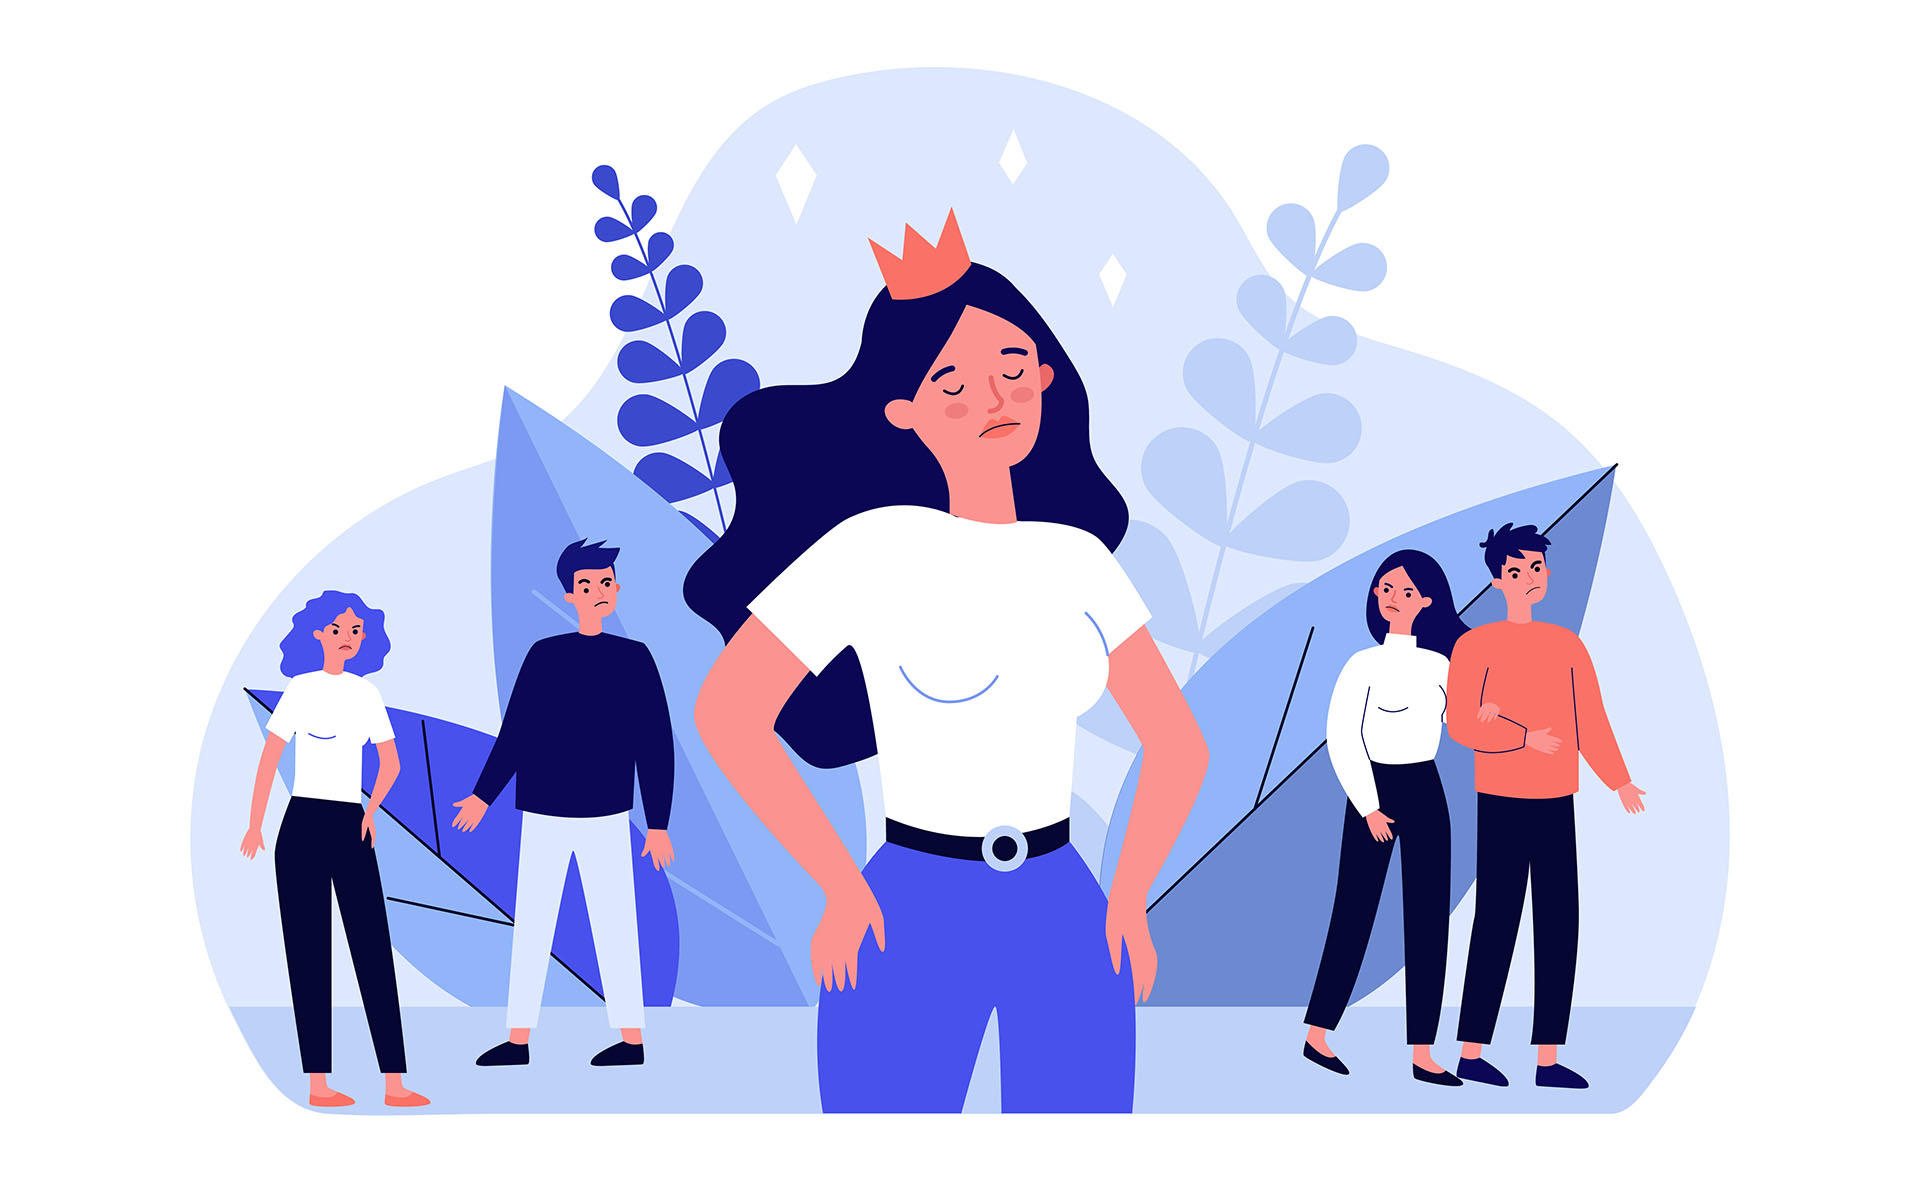 How to Let Go of Ego - Selfish girl and society flat vector illustration. Arrogant young woman not seeing angry people. Social problem and communication concept.